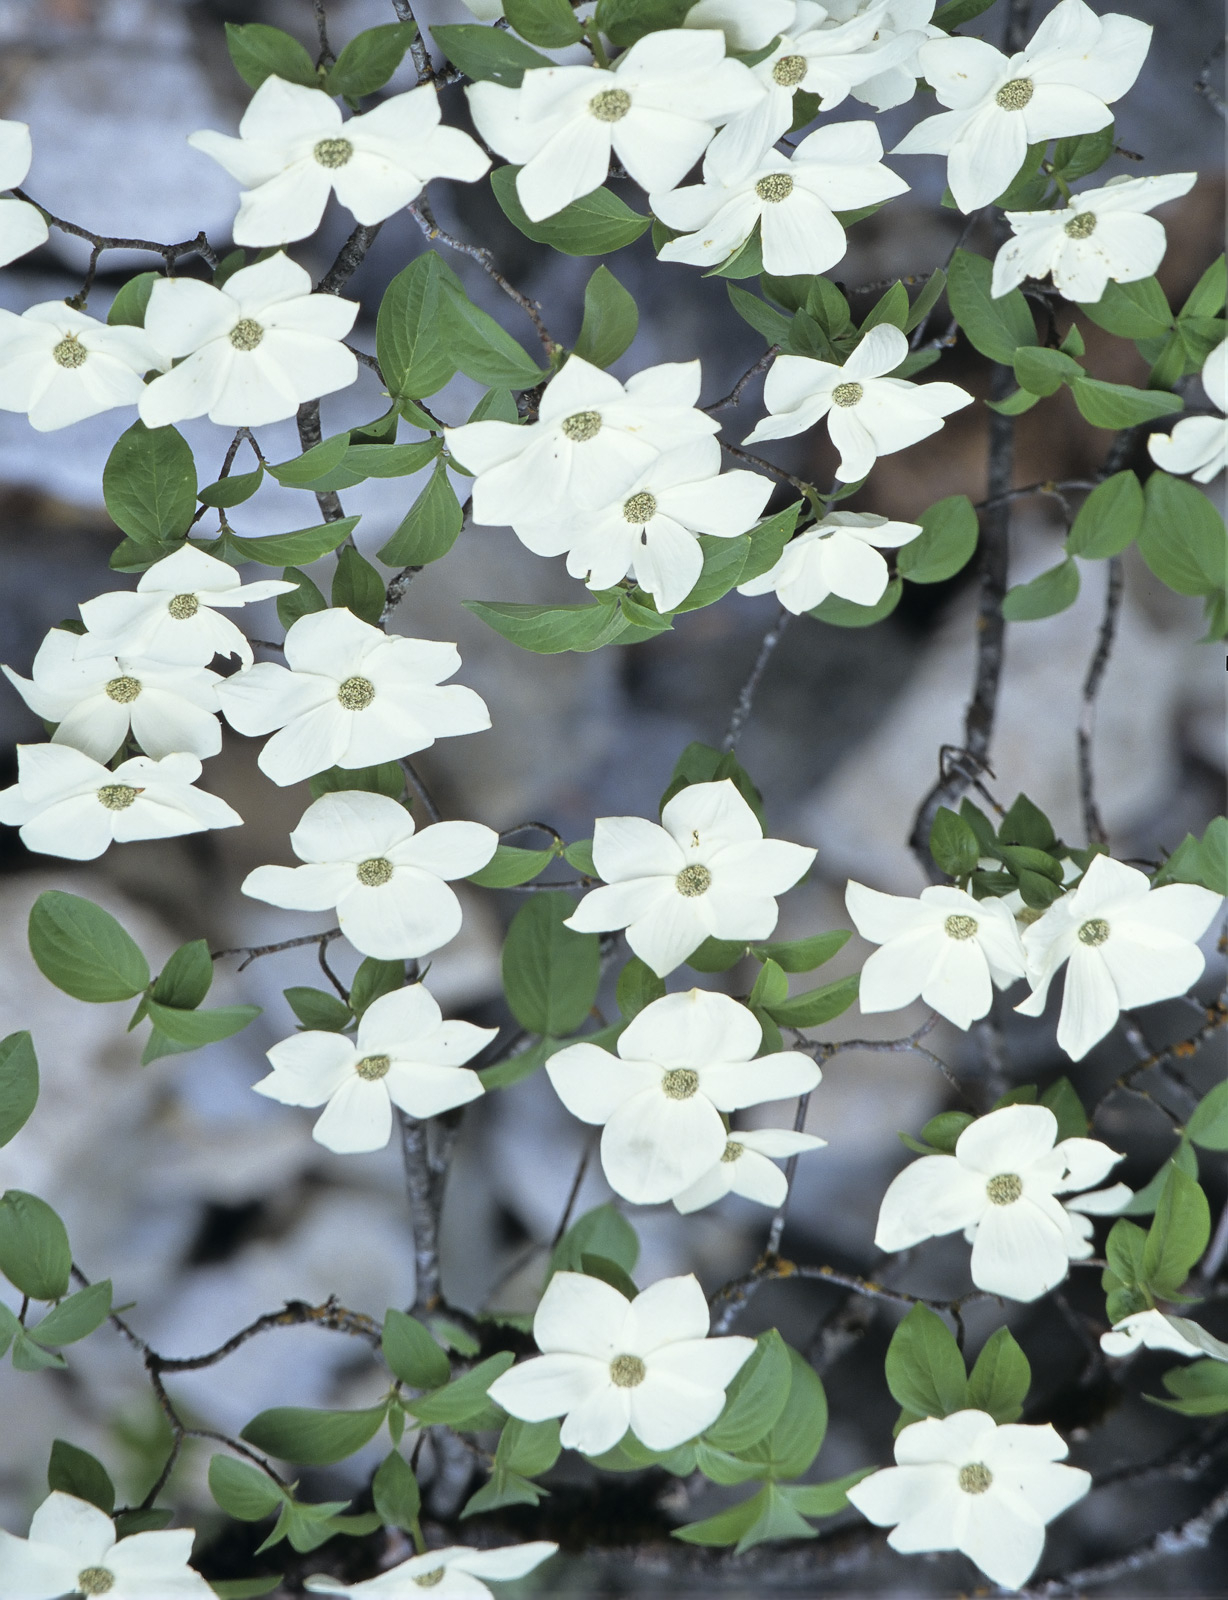 During the Spring while snow melt still lurked in the shadows of the higher places I found Pacfic Dogwood in large clusters of...